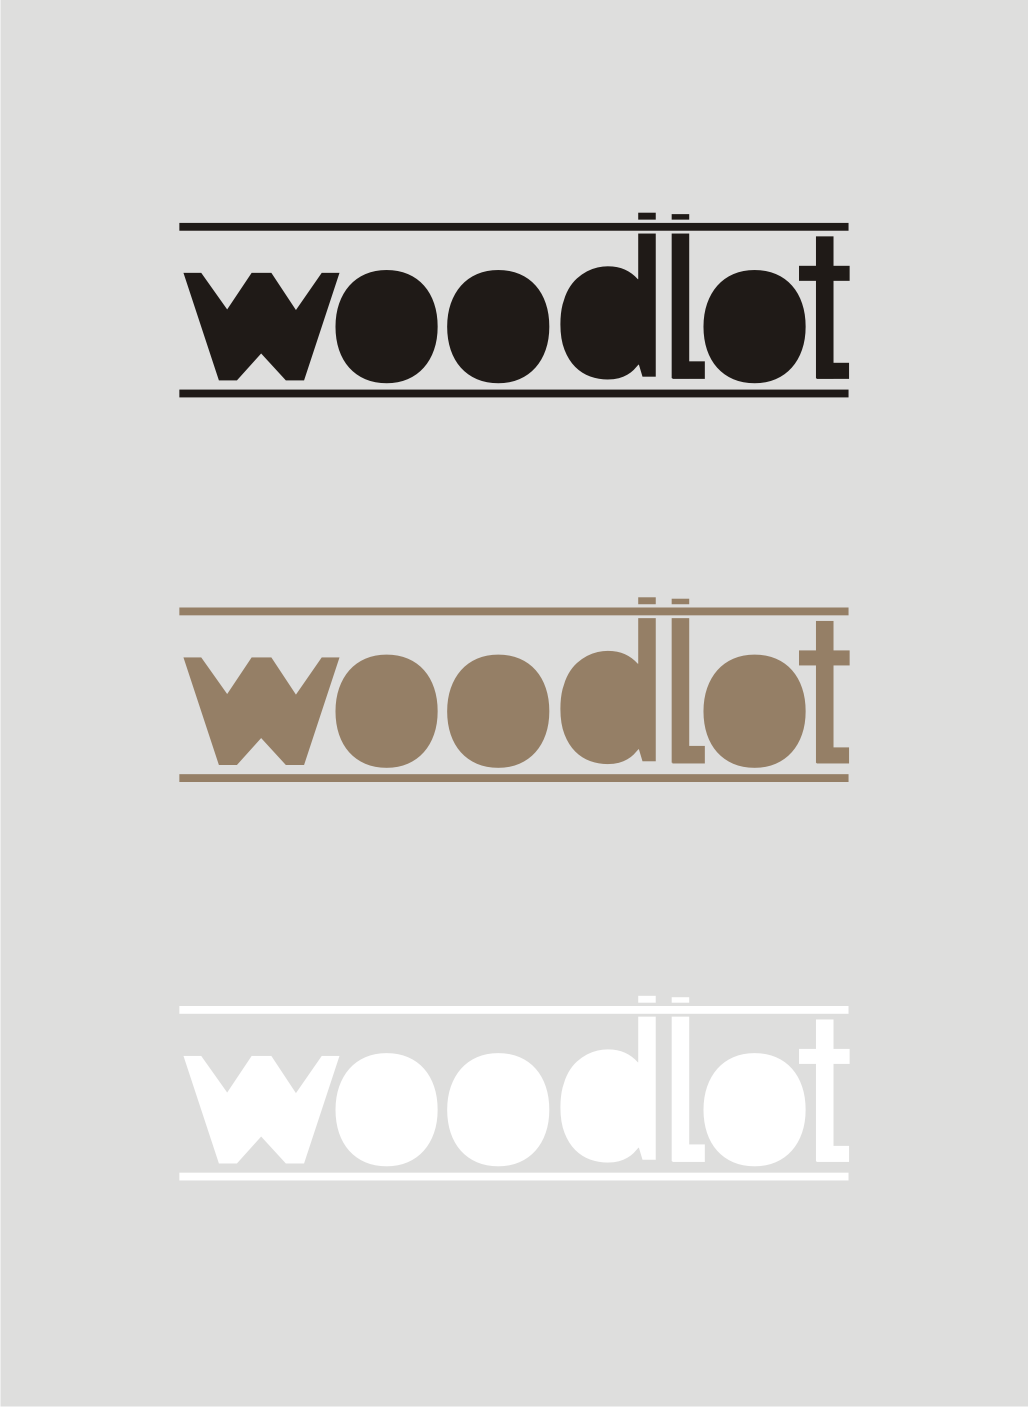 Logo Design by Nthus Nthis - Entry No. 28 in the Logo Design Contest Fun Logo Design for woodlot.